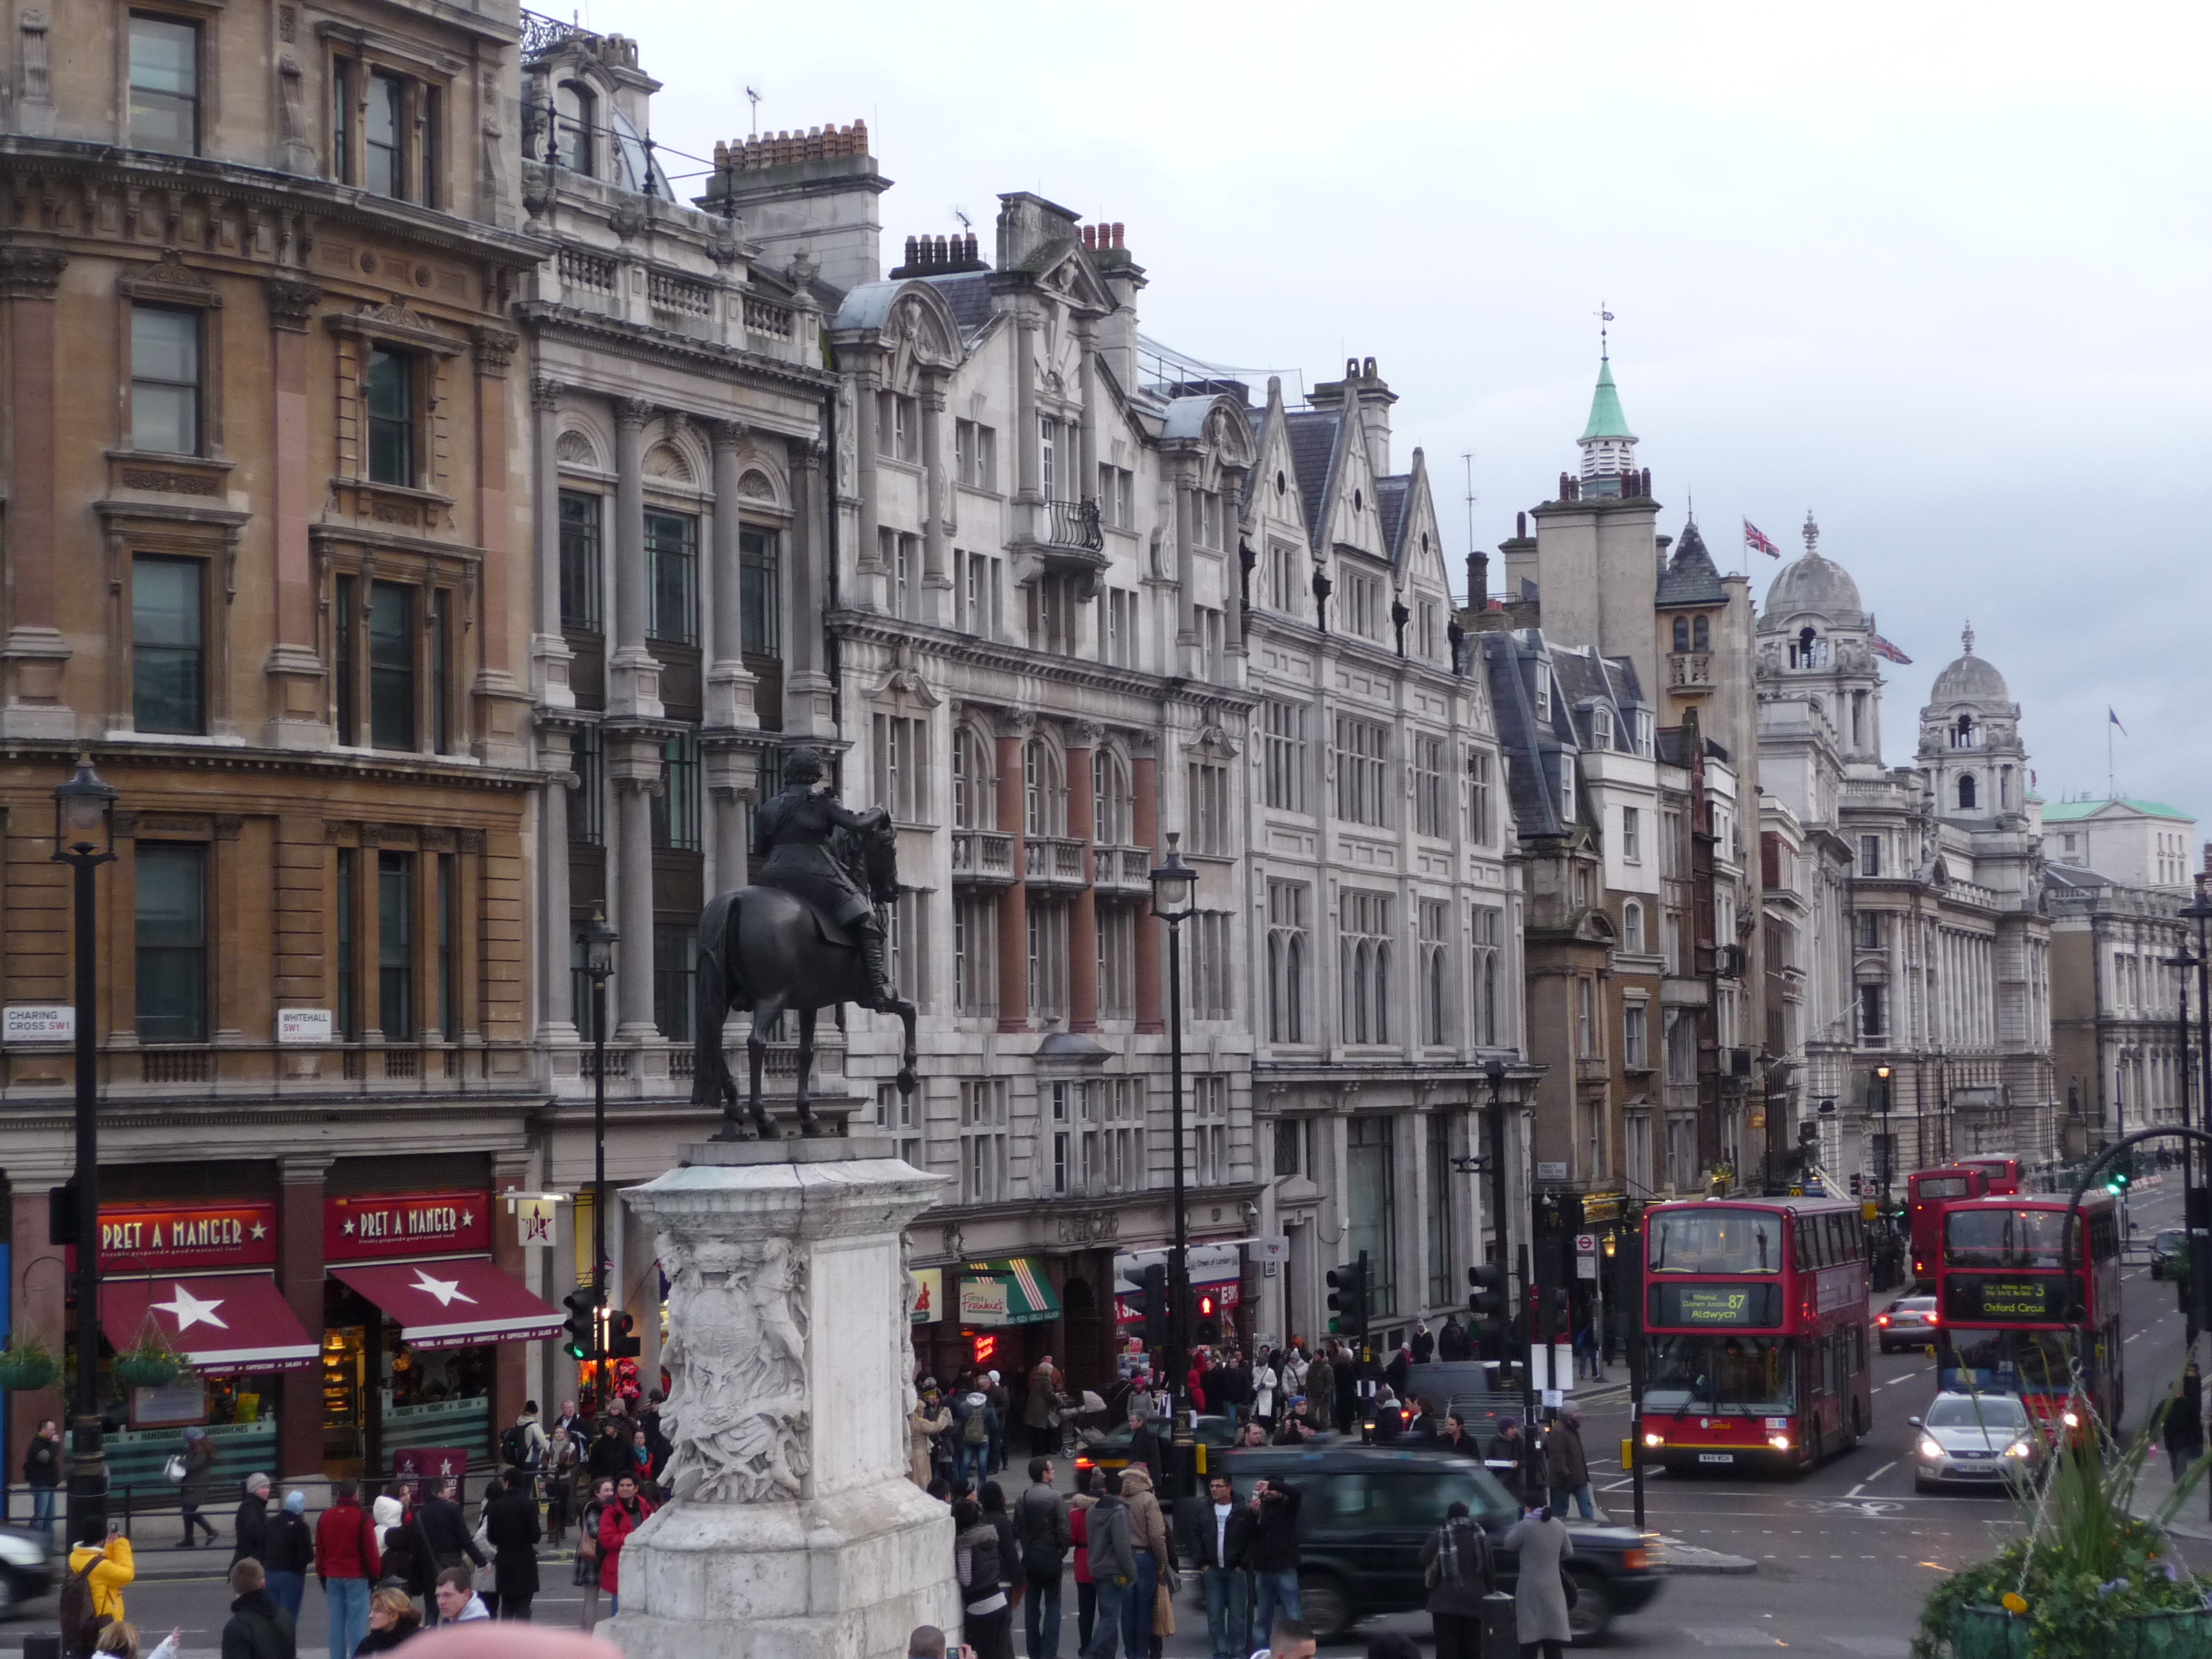 File:Trafalgar Square - Whitehall - panoramio.jpg - Wikimedia Commons